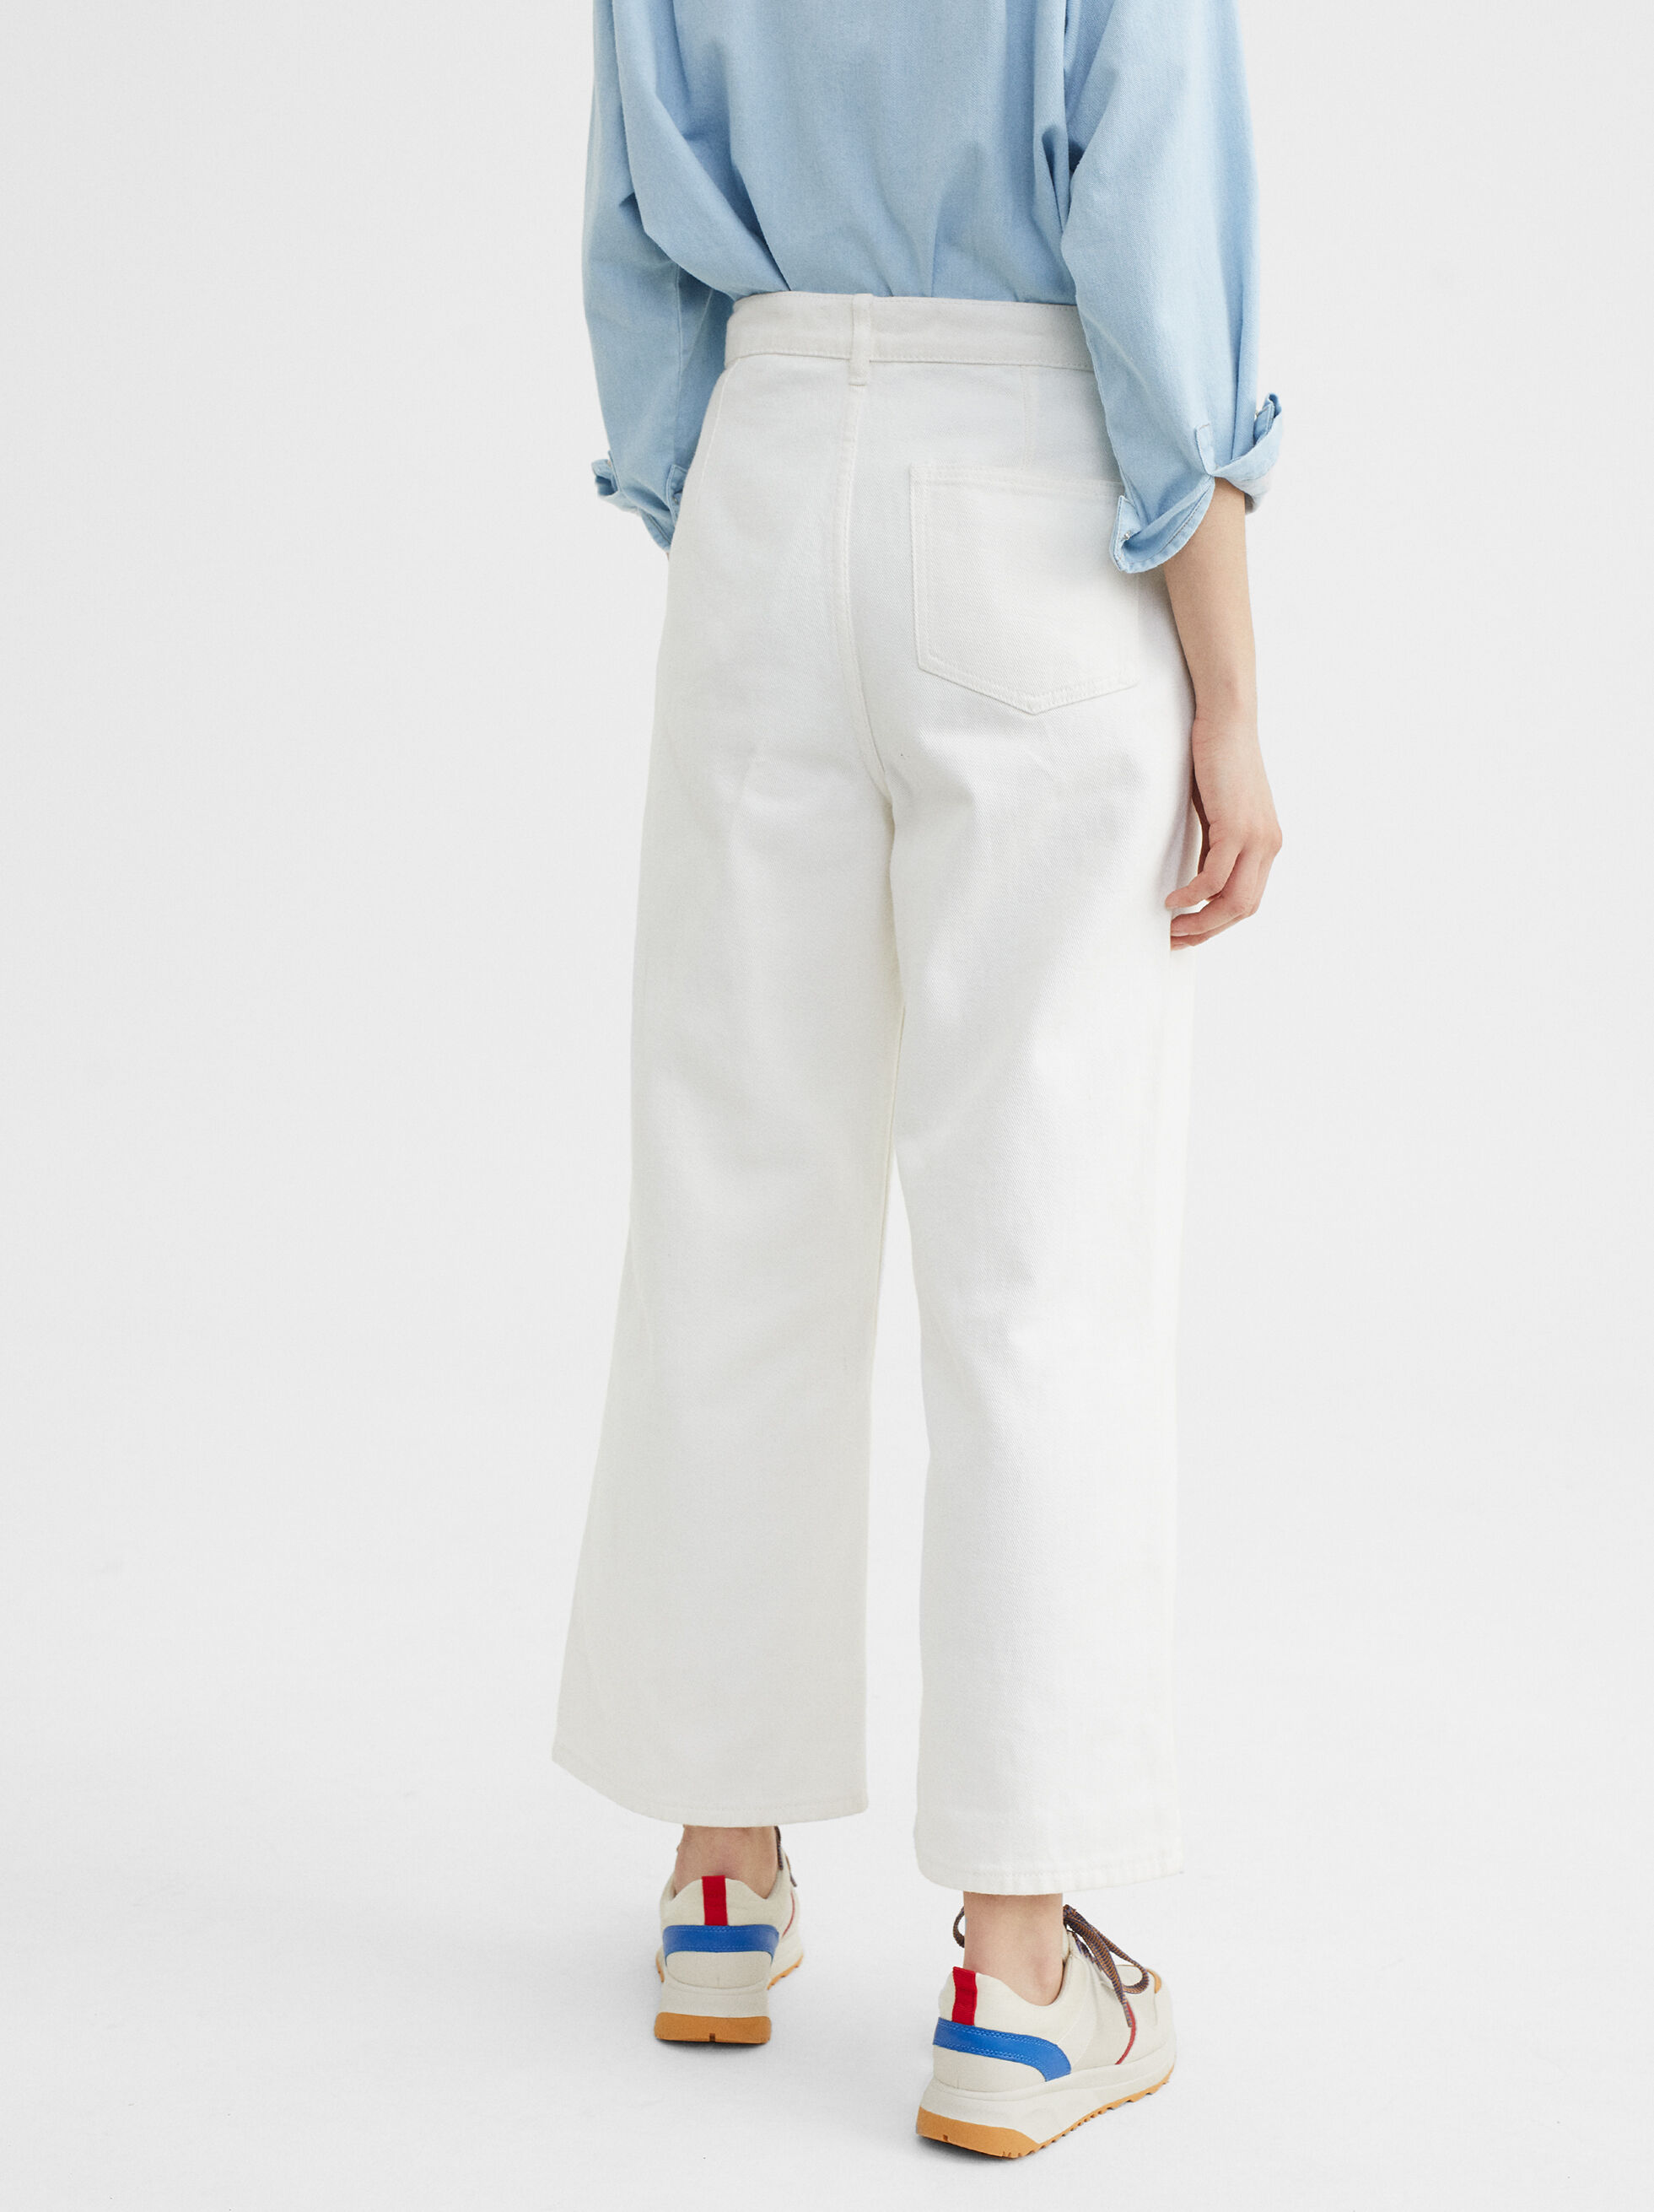 Here And Now Jeans, White, hi-res